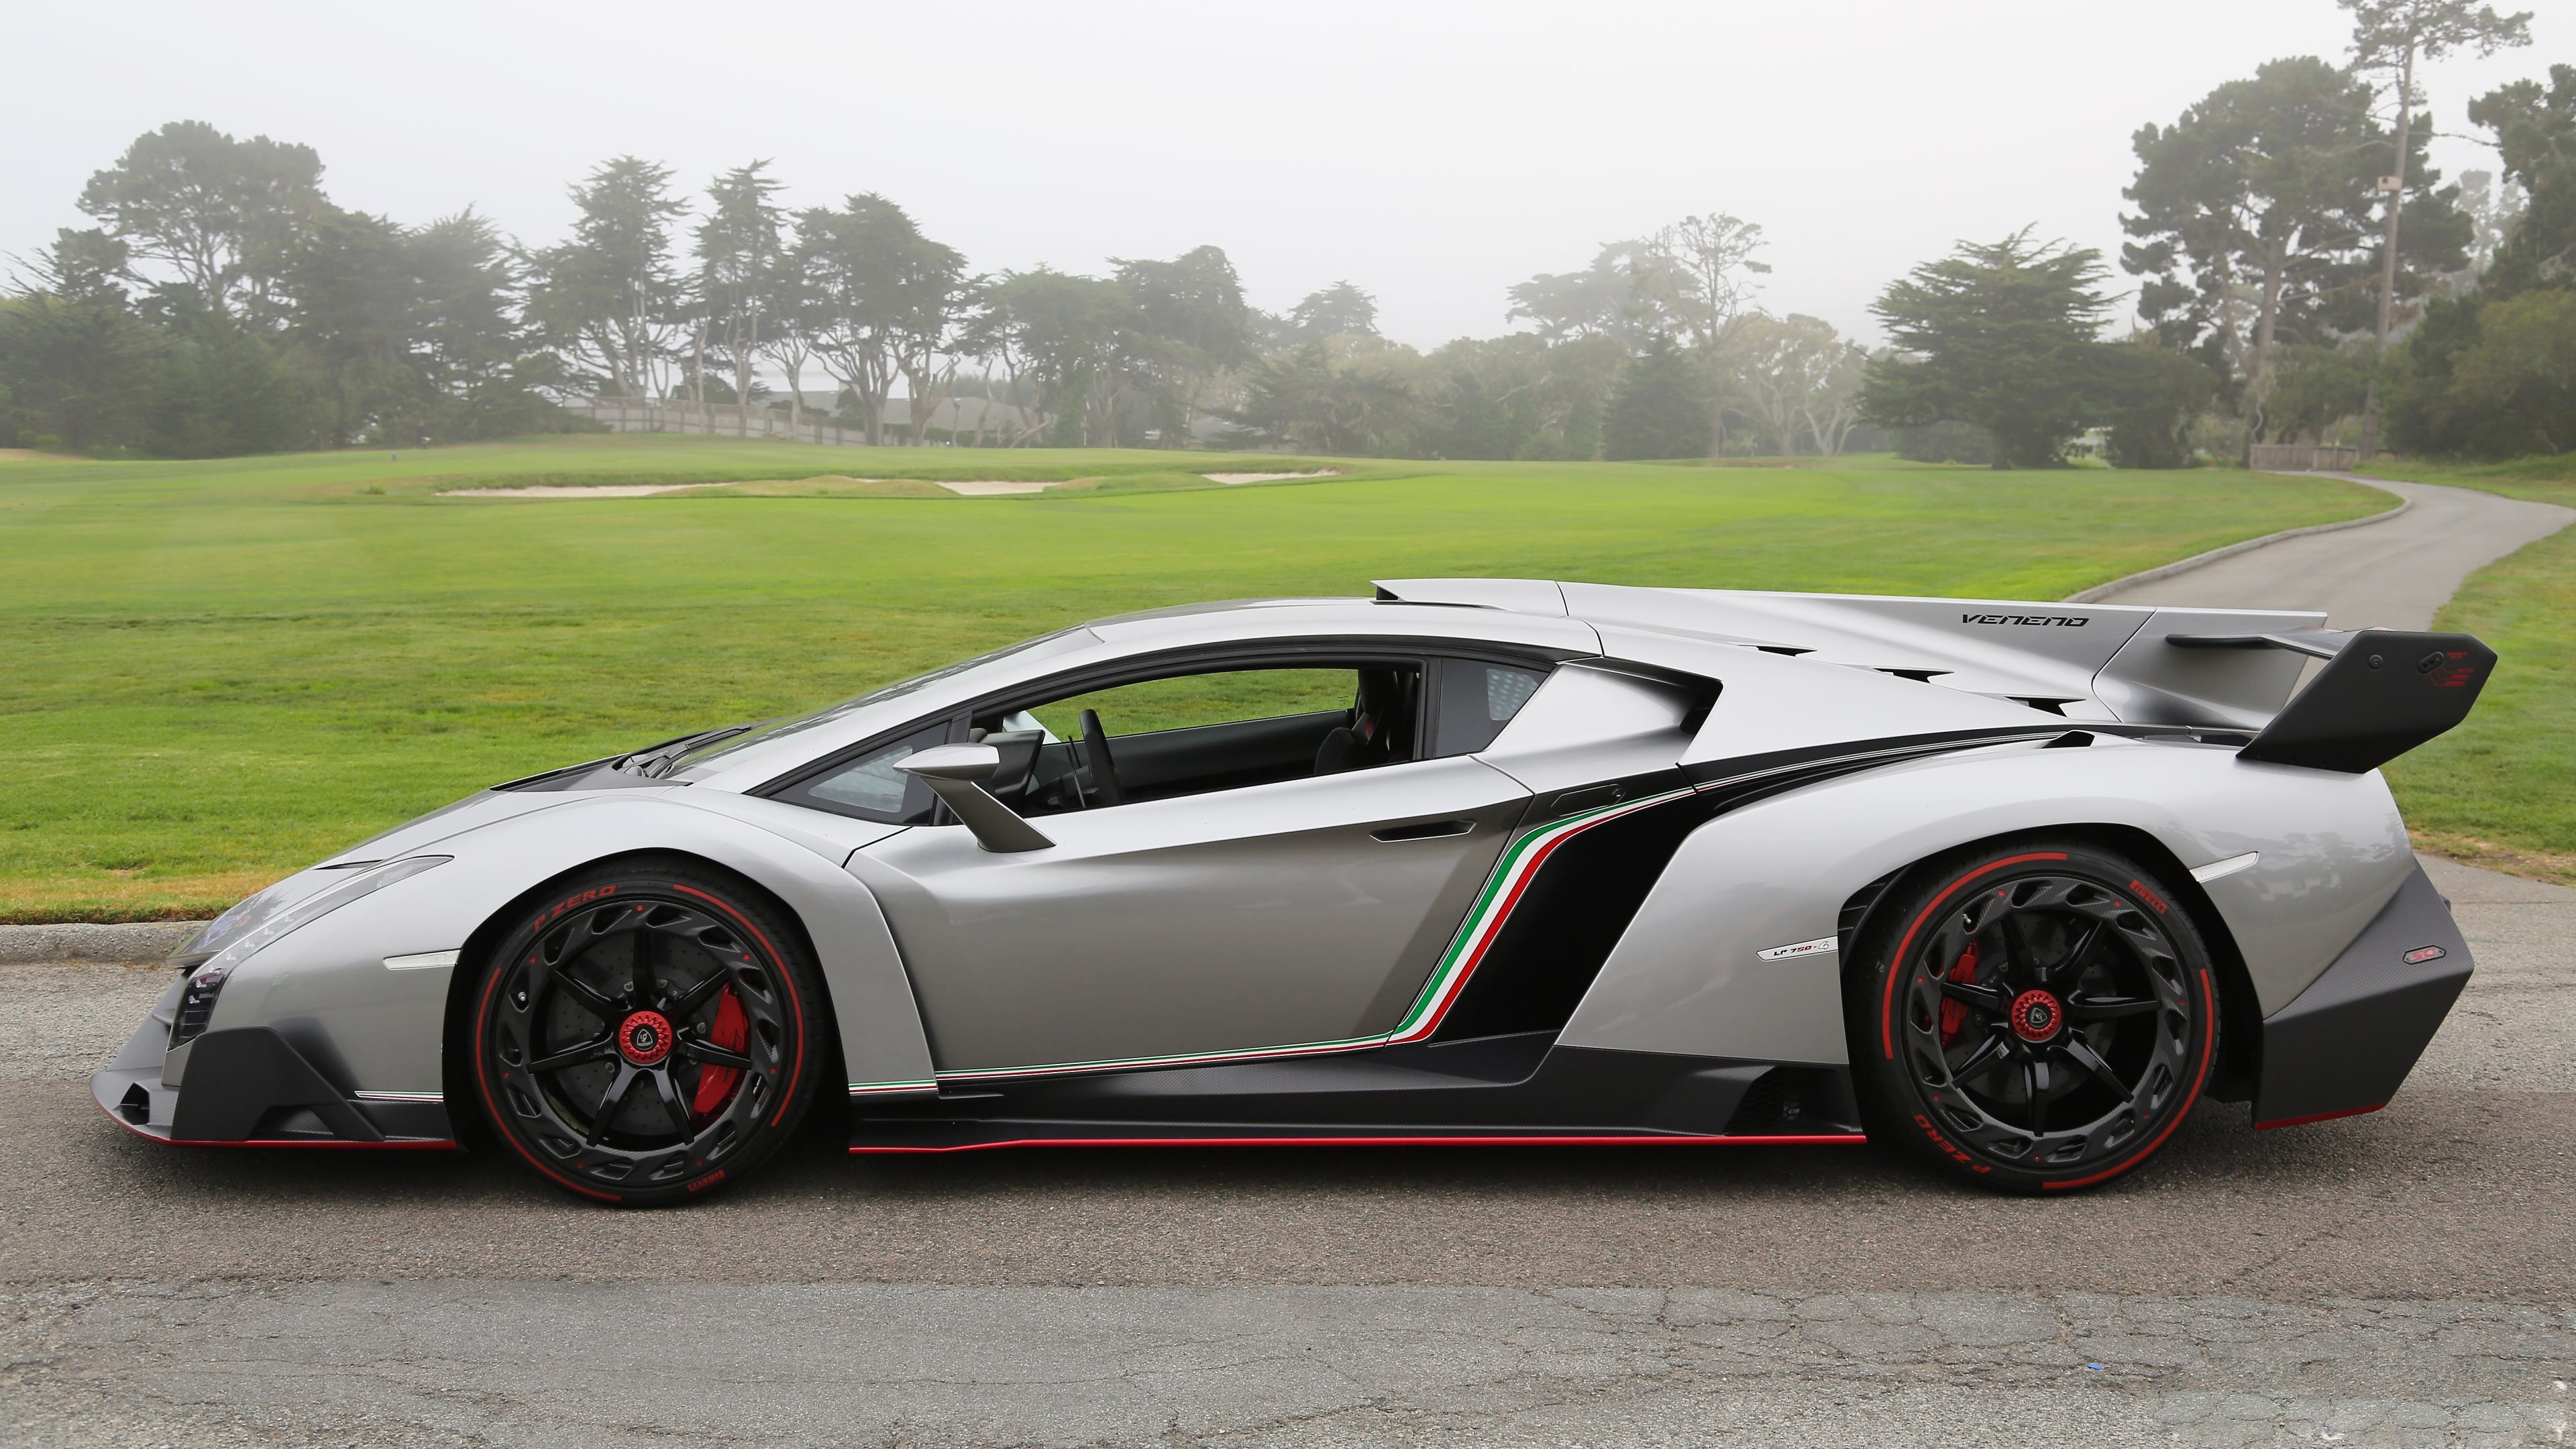 Wallpaper Lamborghini Veneno Supercar Lamborghini Sports Car Limited Edition Speed Side